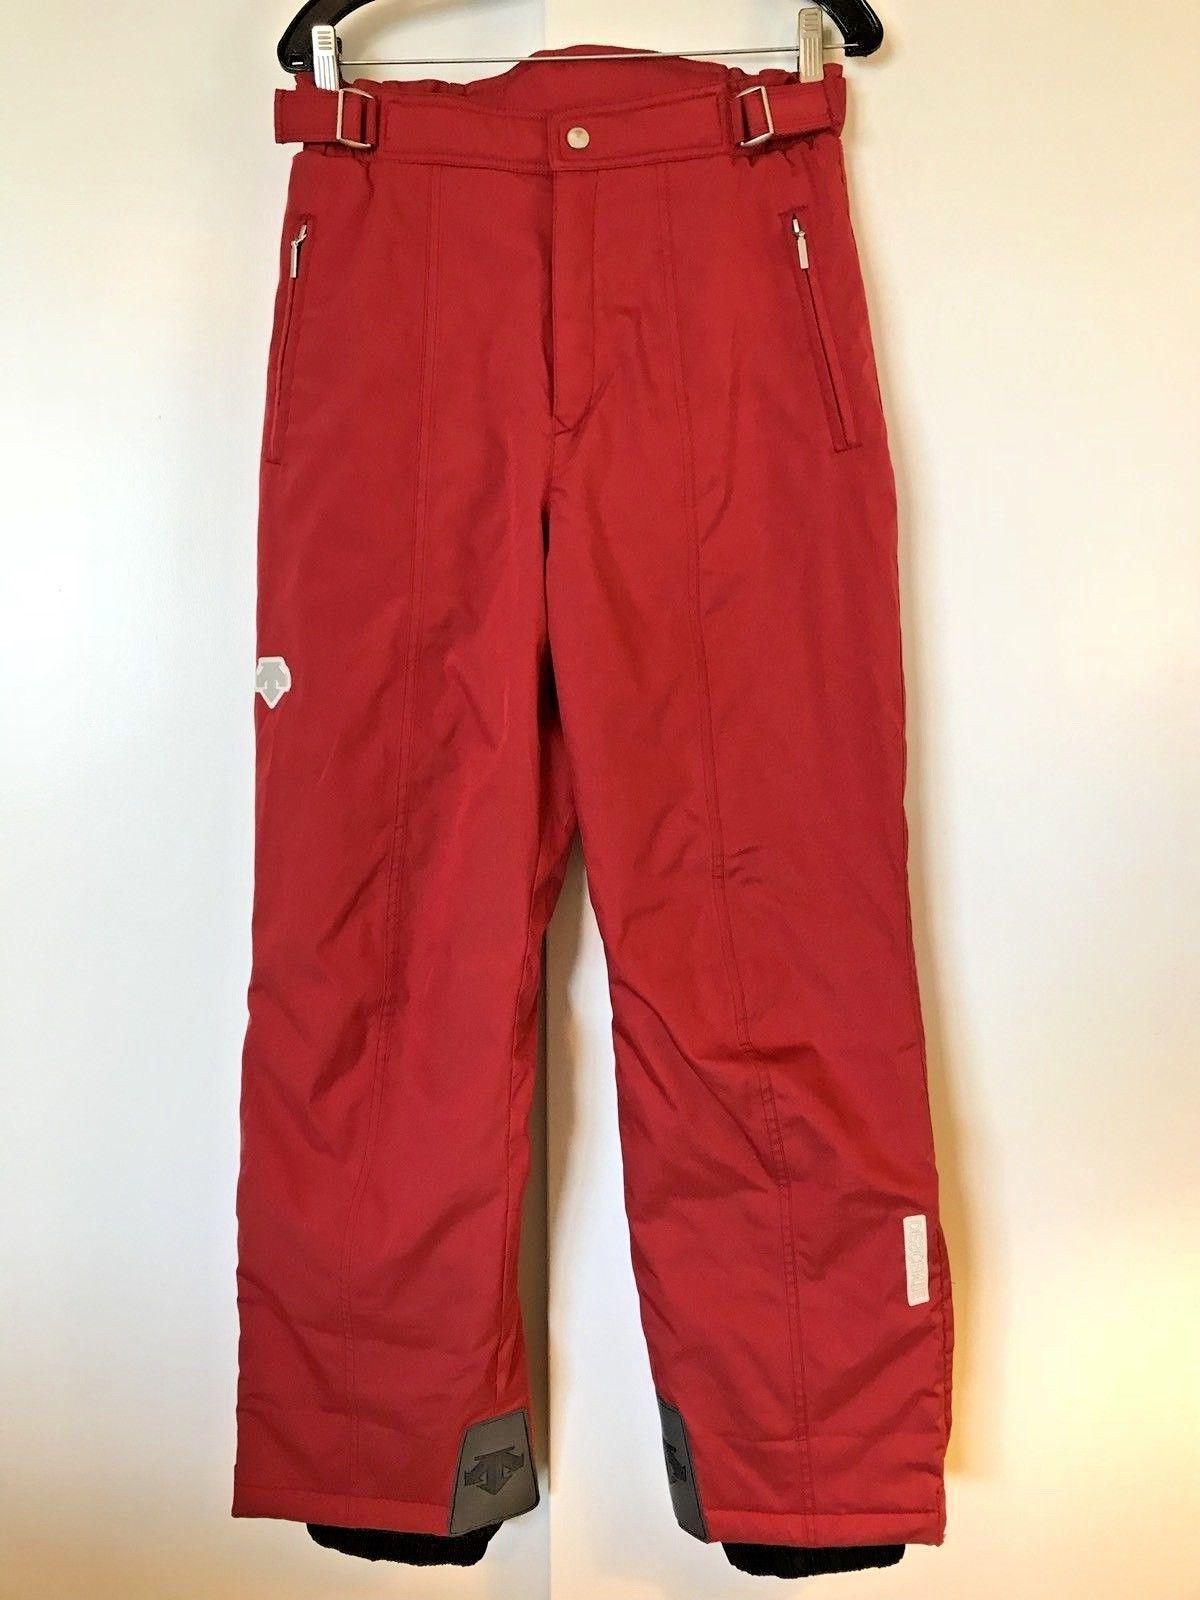 DESCENTE Red Ski Snowboard PANTS Womens Winter